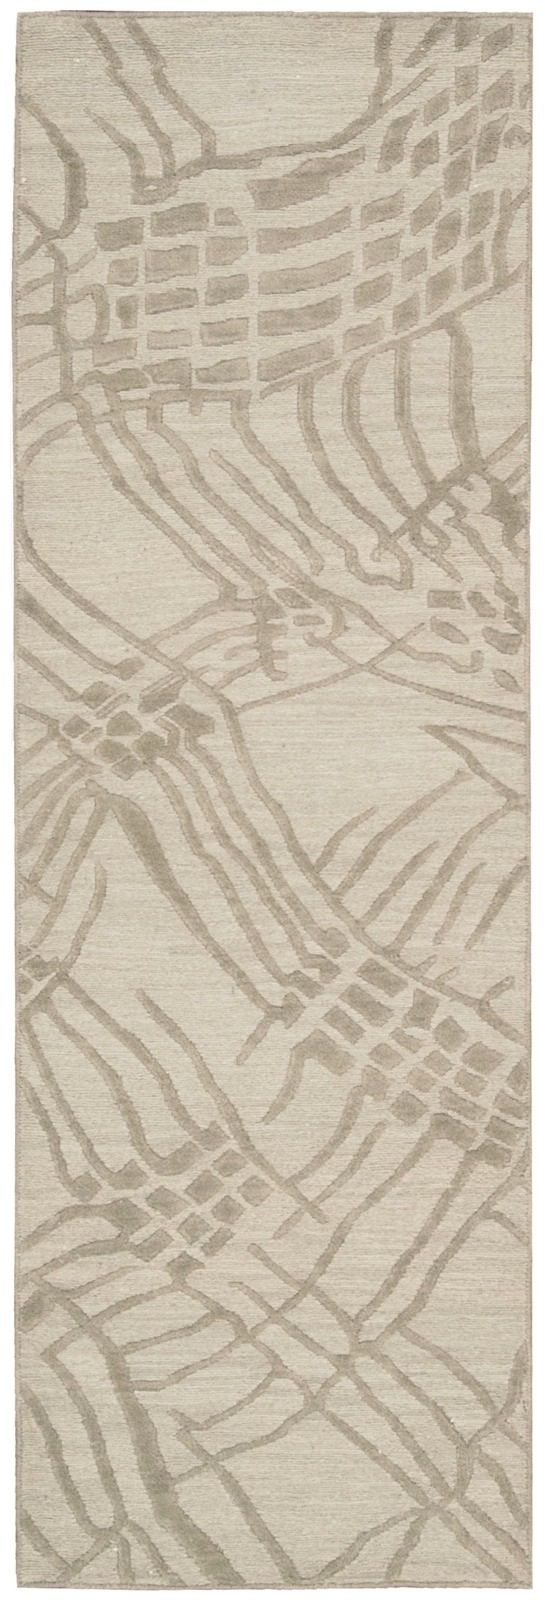 calvin klein ck30 - coastal contemporary area rug collection